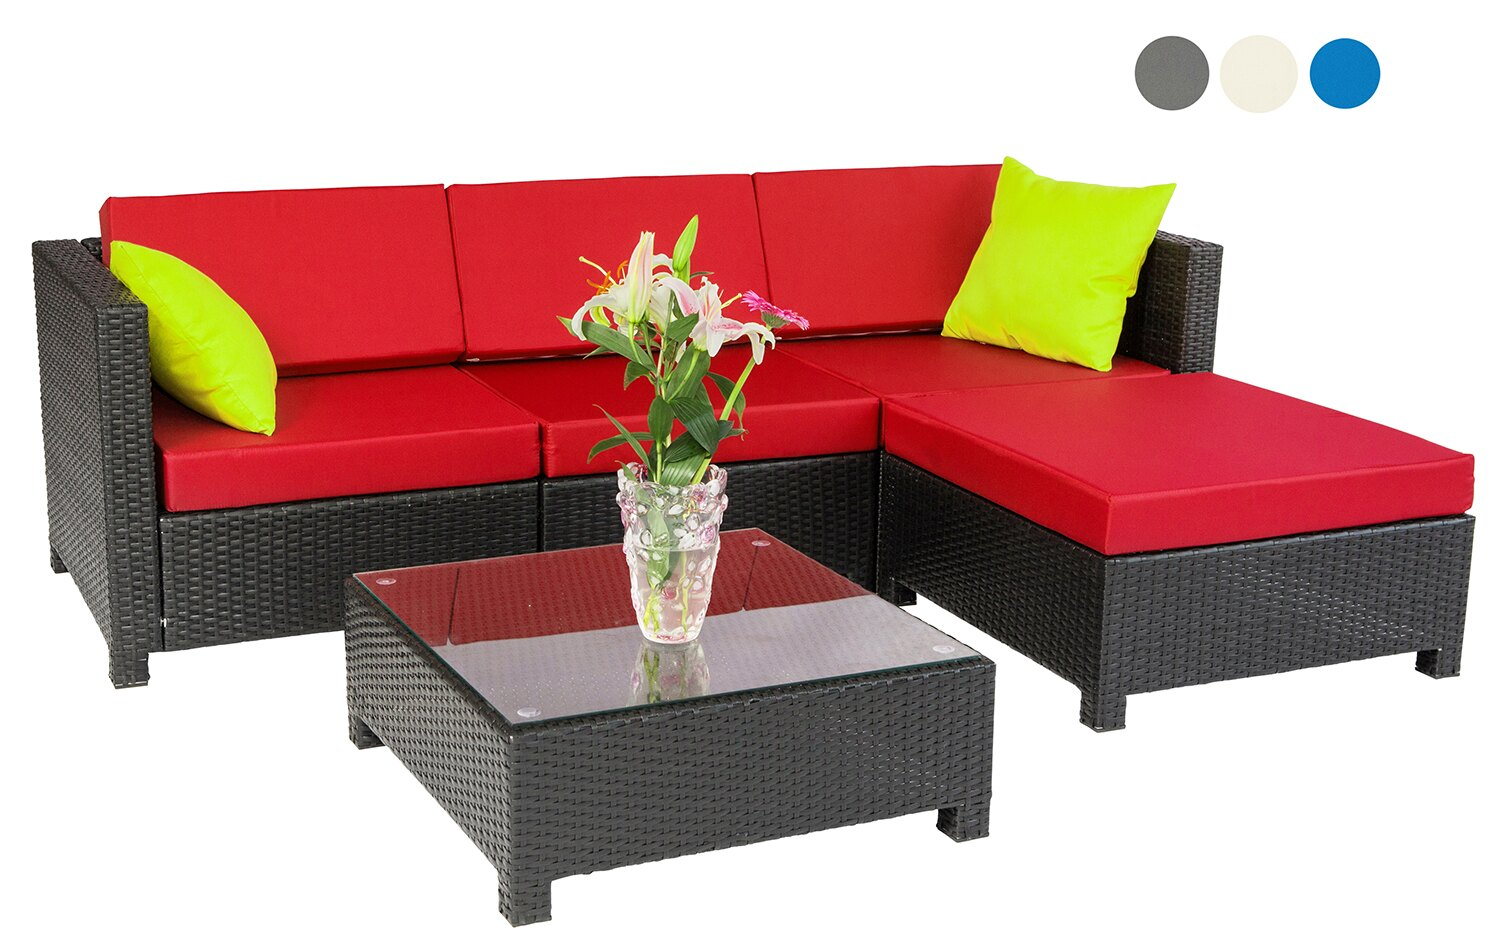 mcombo: mcombo 5pc Luxury Wicker Sectional Outdoor Sofa Aluminum Frame  Furniture 2 sets covers 6080-1005 | Rakuten.com